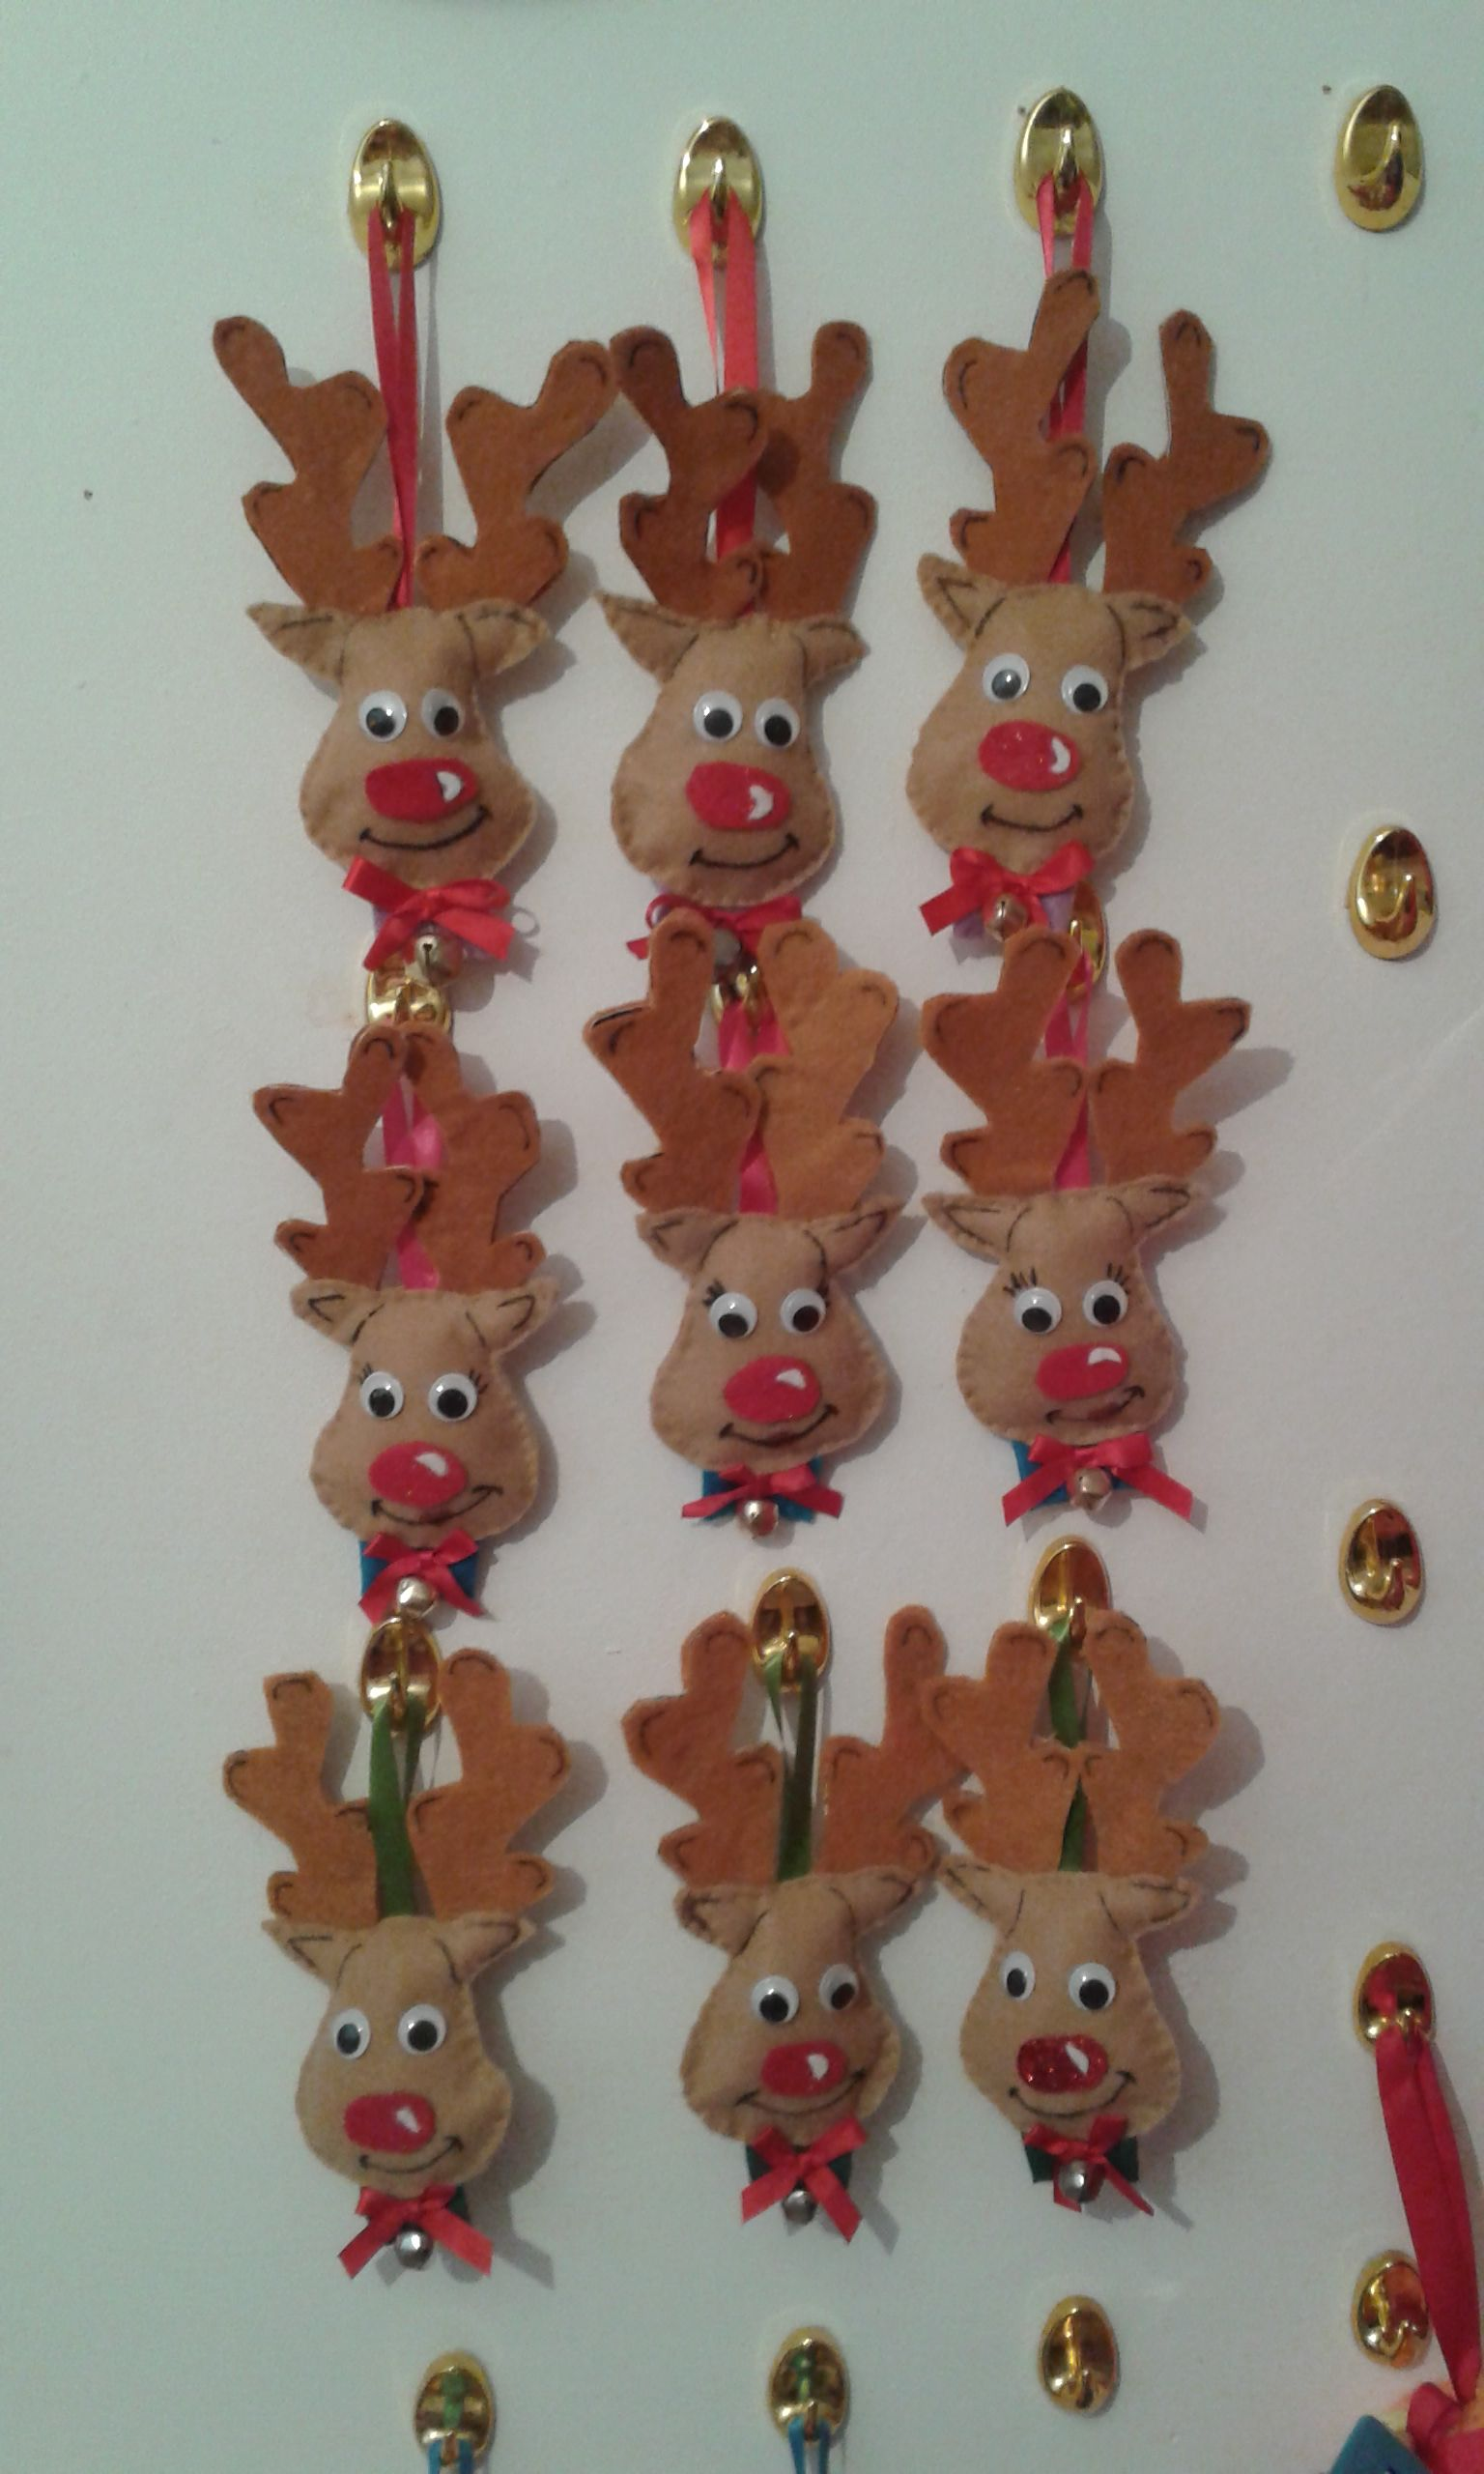 my hand sewn reindeer faces i made cardboard templates for the